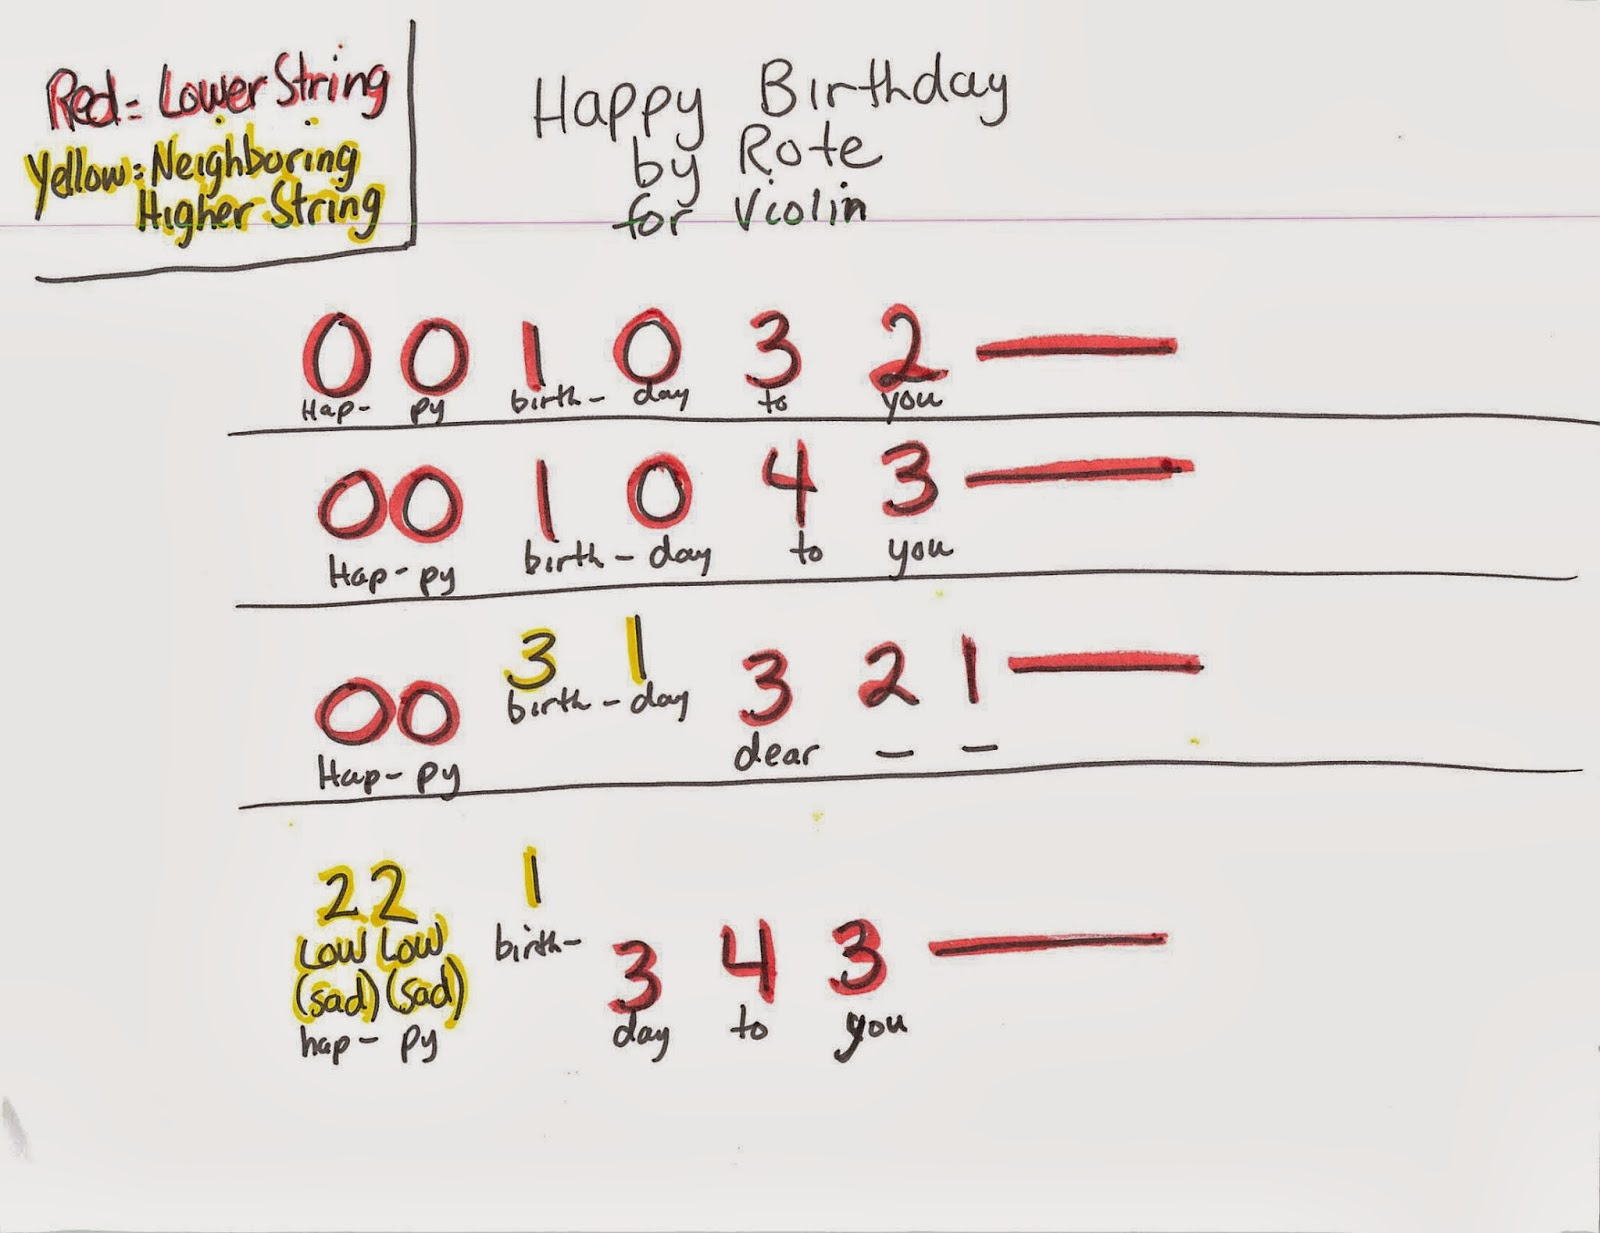 Happy Birthday Violin Notes With Letters Free Professional Resume